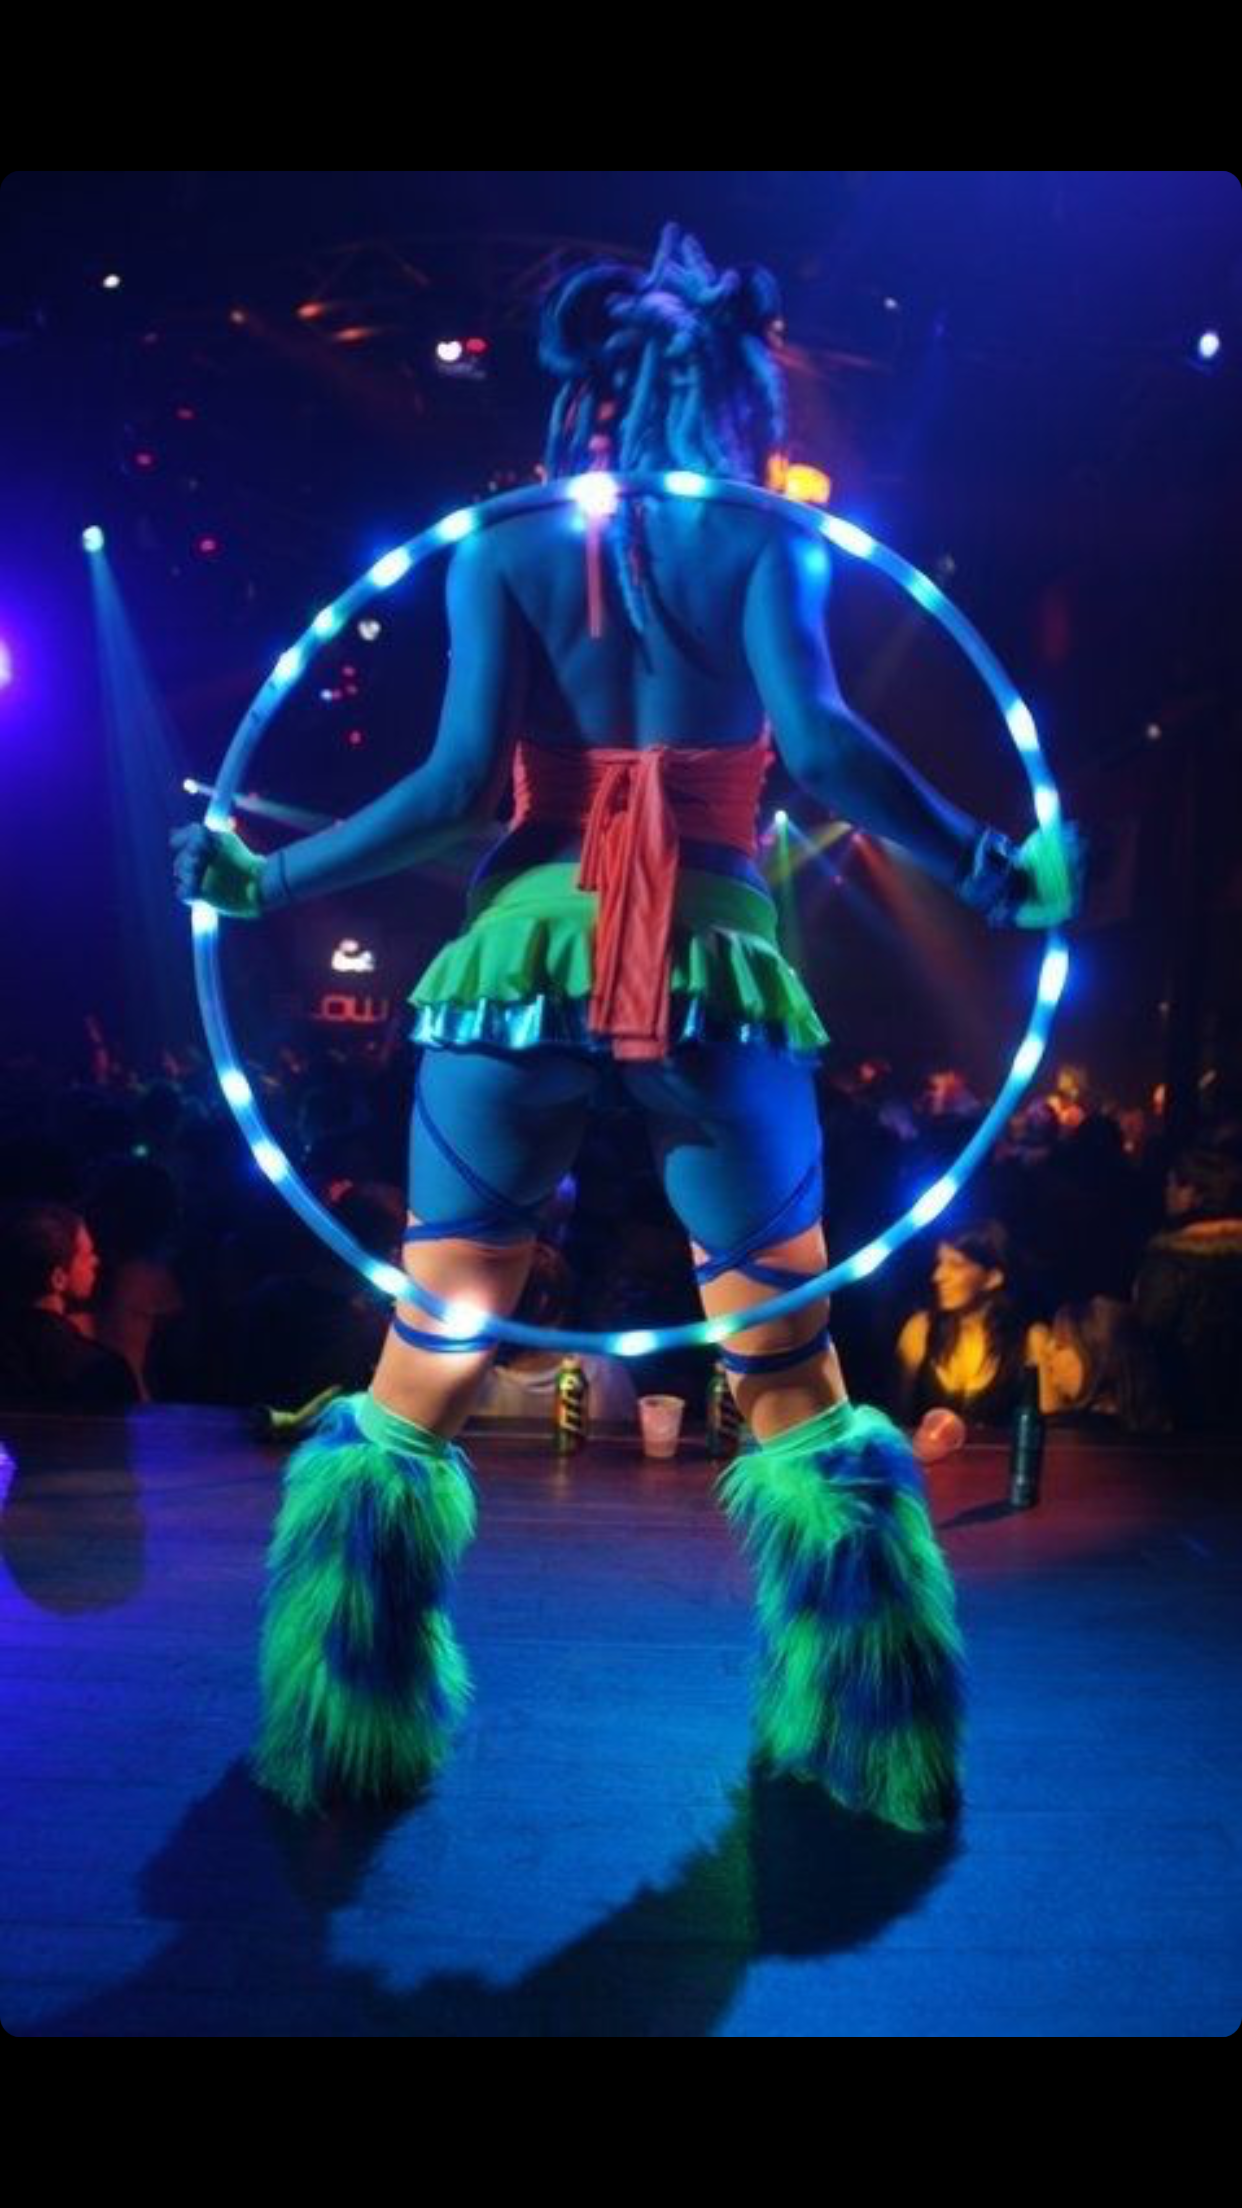 Pin By Andre J Denoux On Rave Booty Pinterest Hula Hoop Led And Hoops Edm Girls Festival